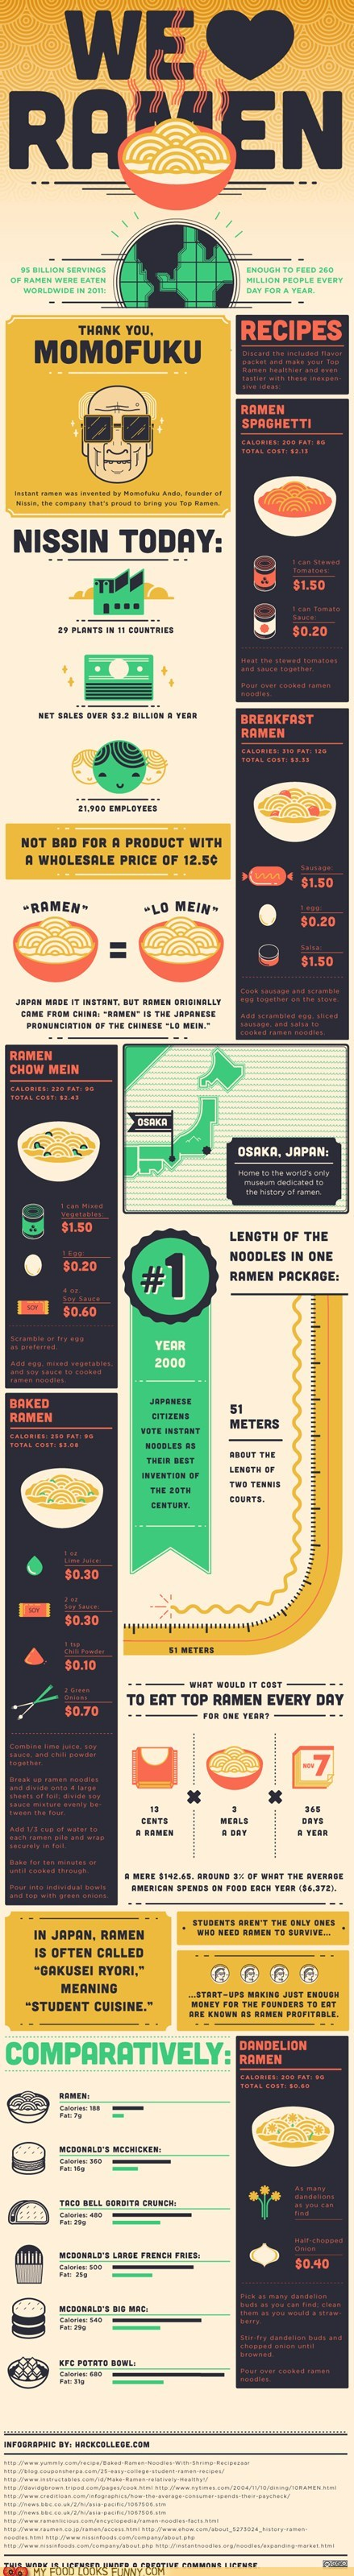 best of the week,history,infographic,noodles,ramen,recipes